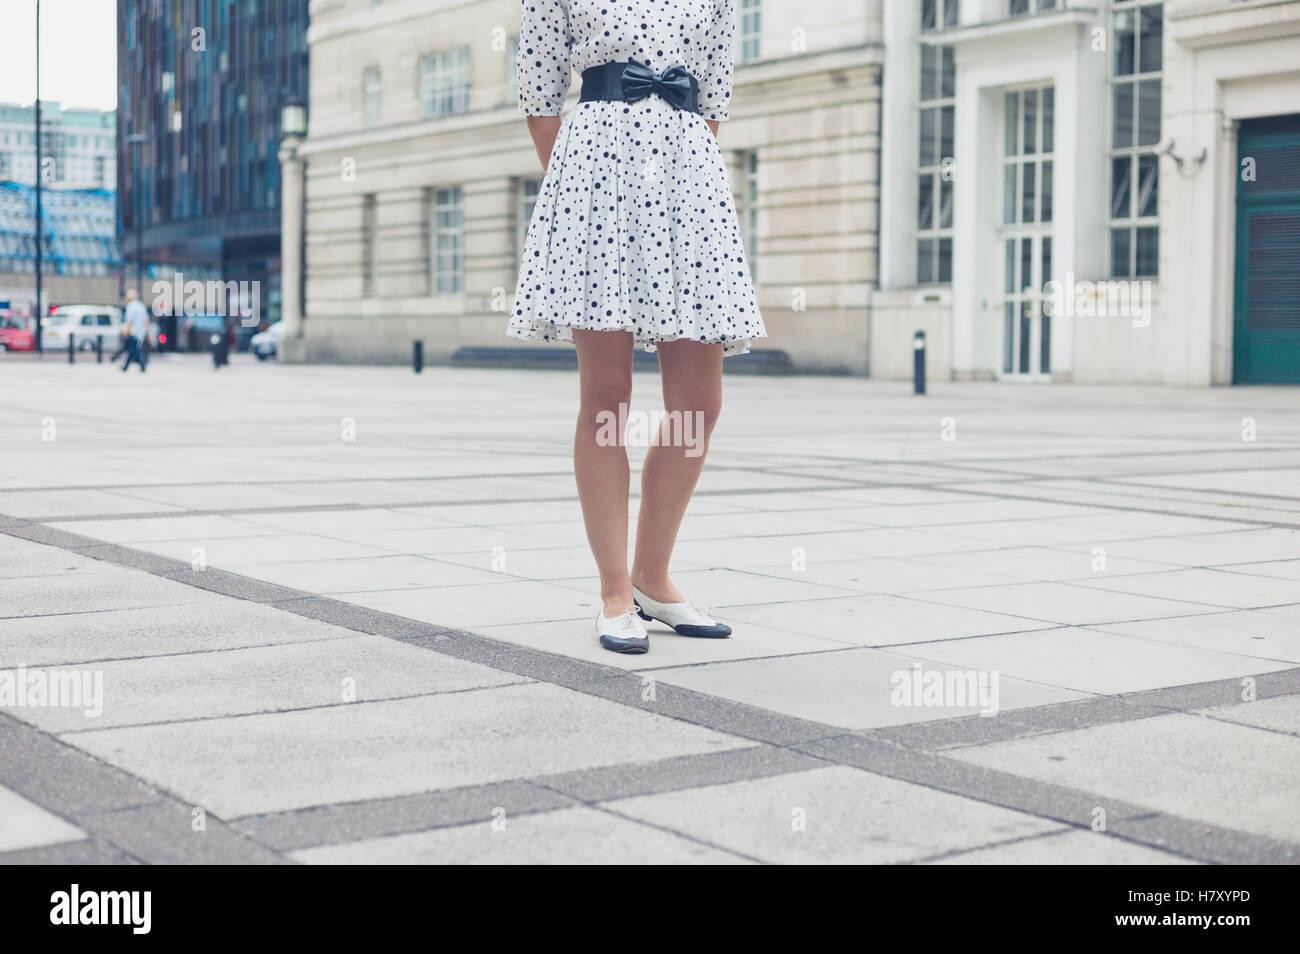 b983b22baca A young woman wearing a white dress with black dots is standing in a square  in